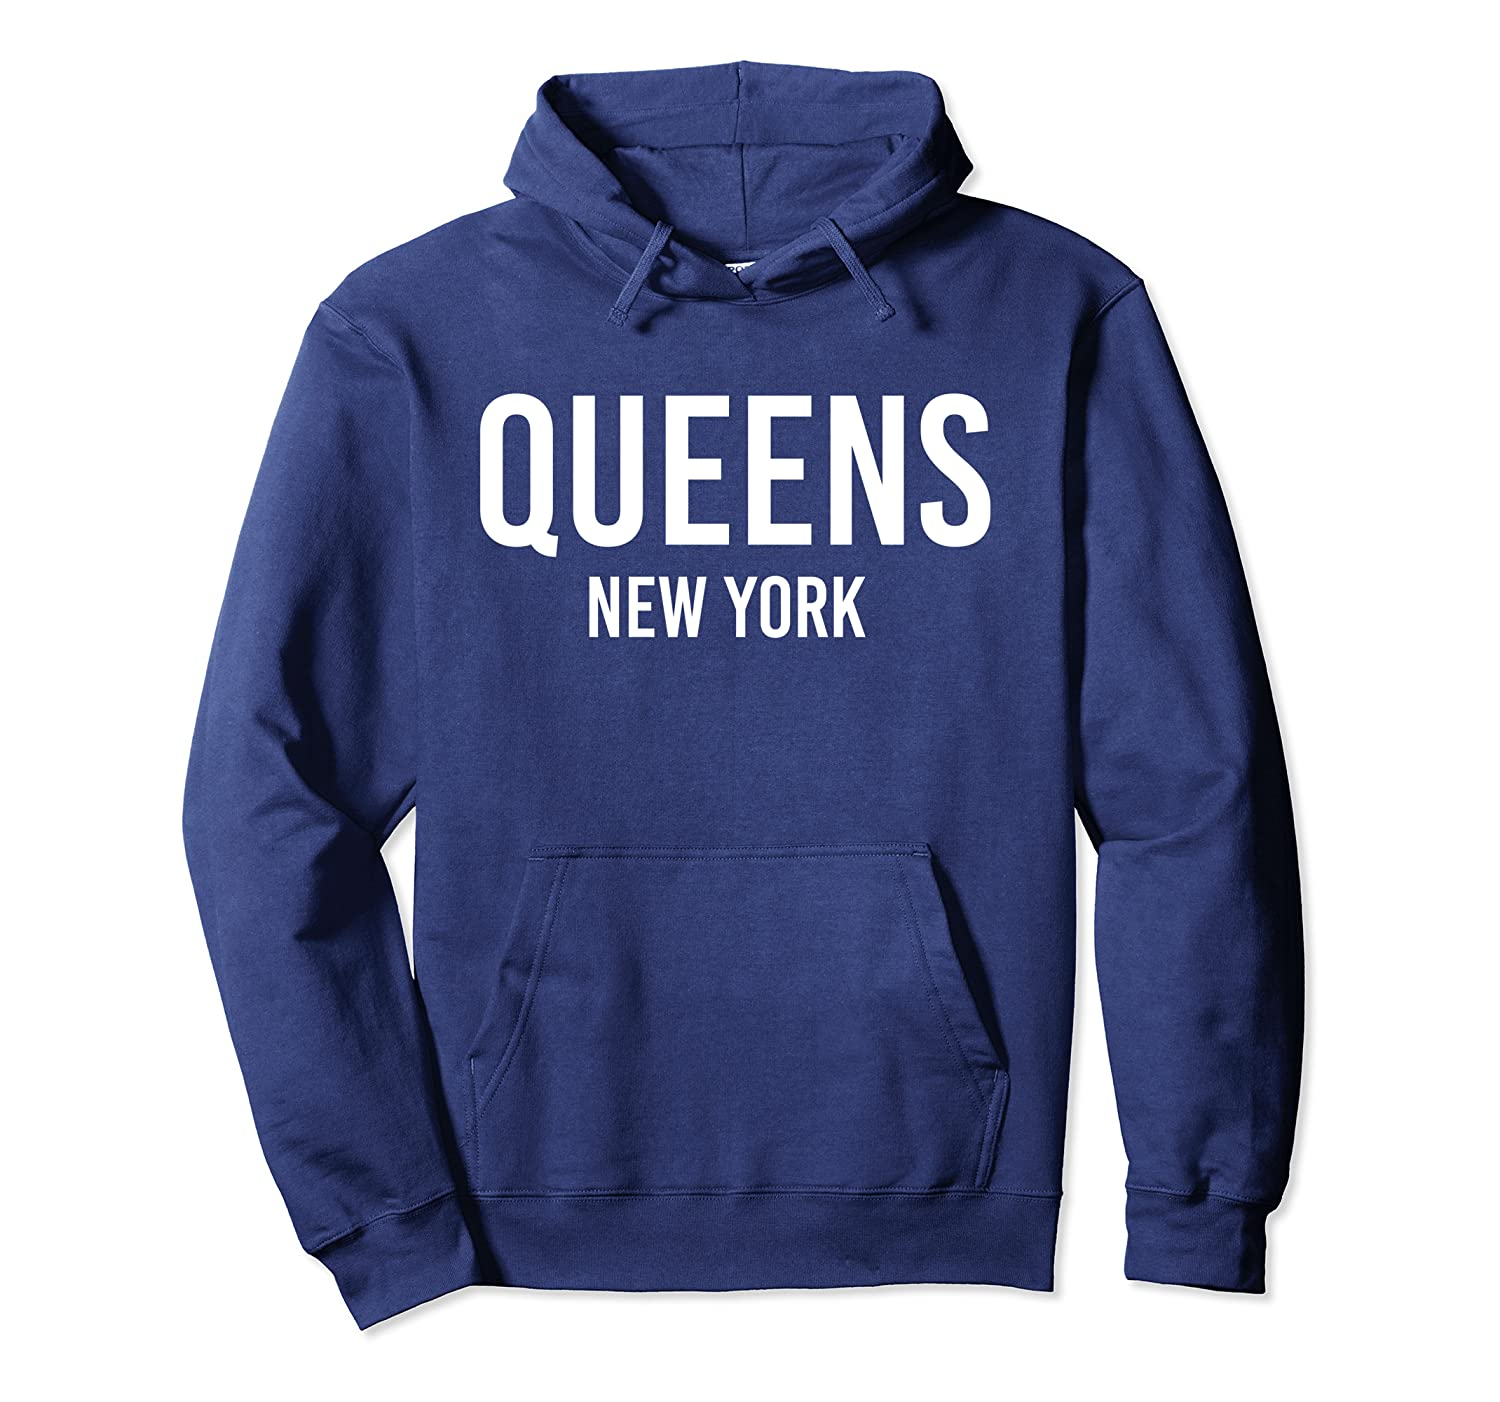 QUEENS NEW YORK NY USA Patriotic Vintage Sports Pullover Hoodie